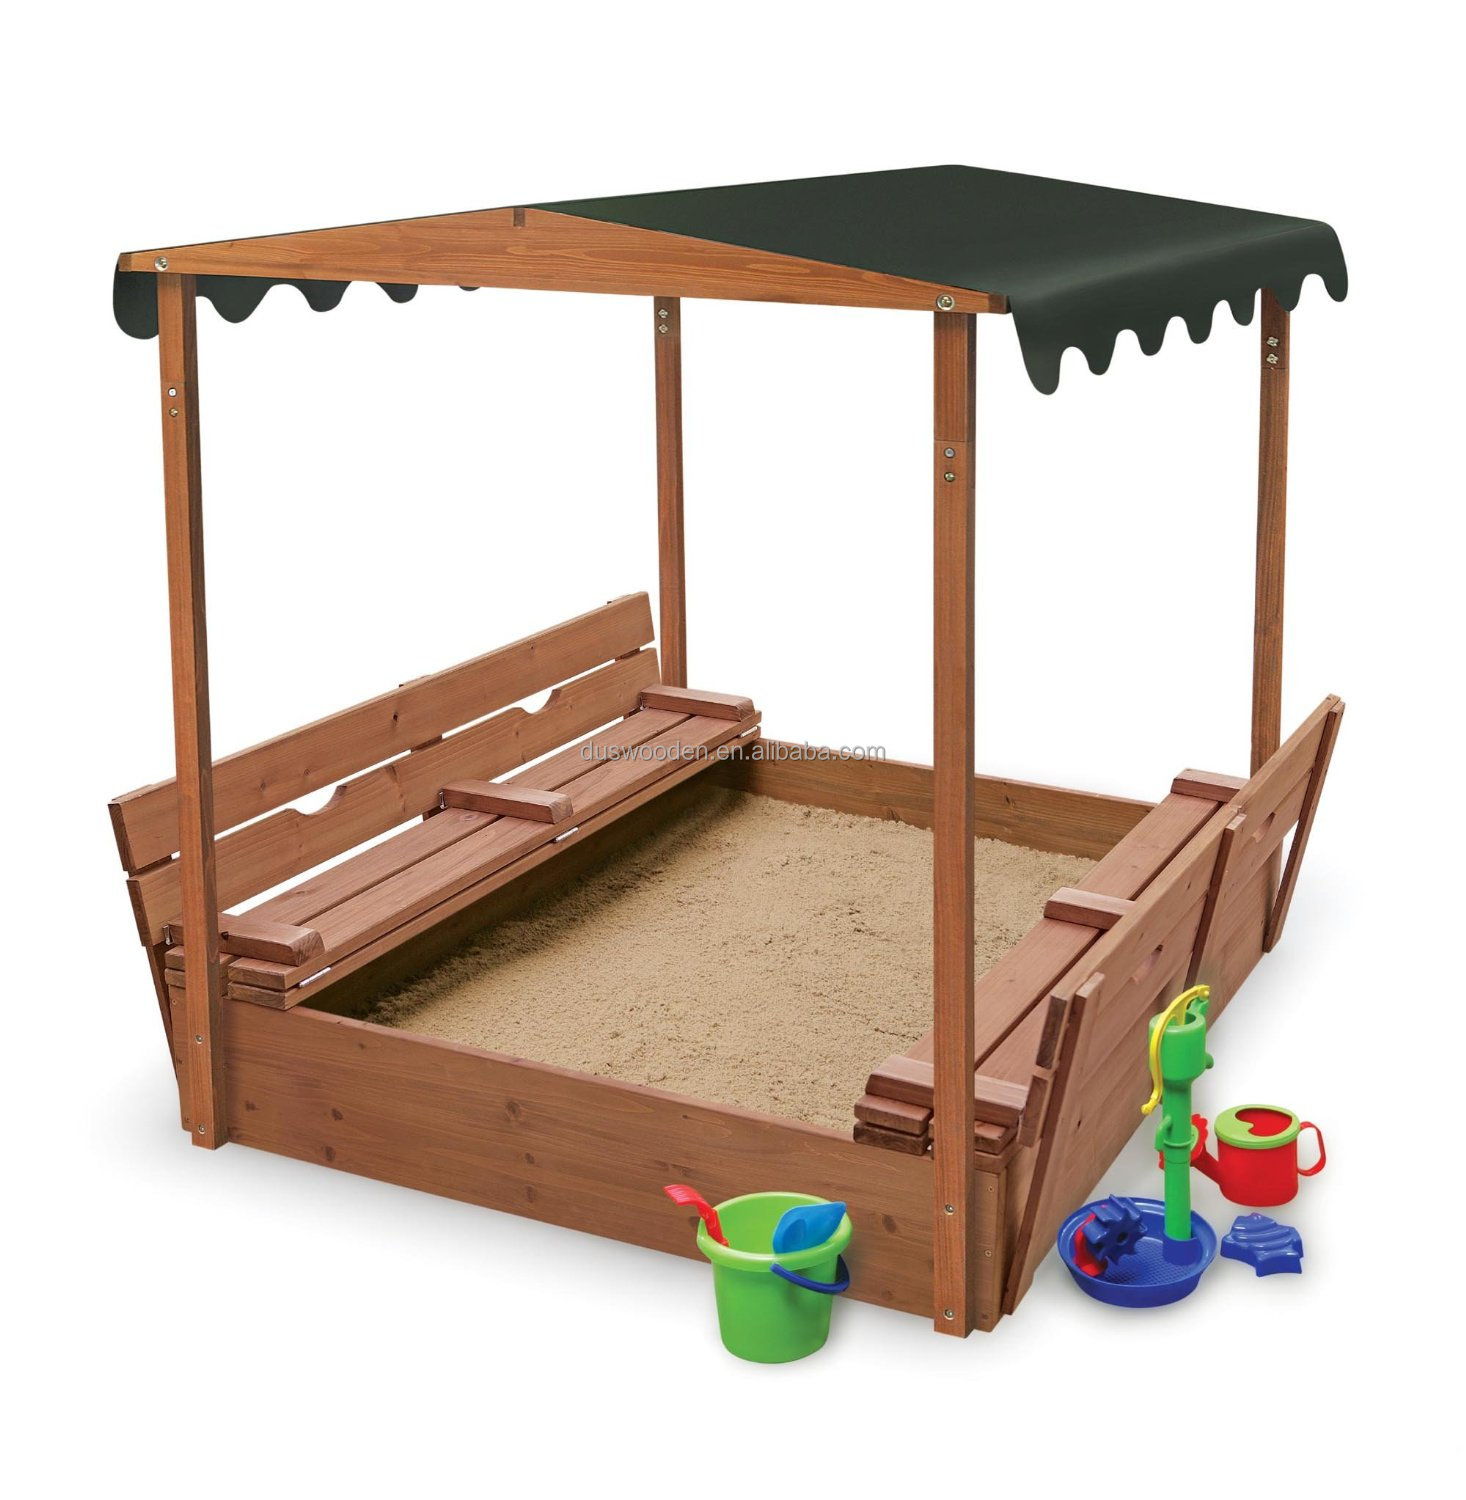 Outdoor sandbox with bench 48ft x 39ft Kids sandbox toys Waterproof & sunscreen sandbox toys